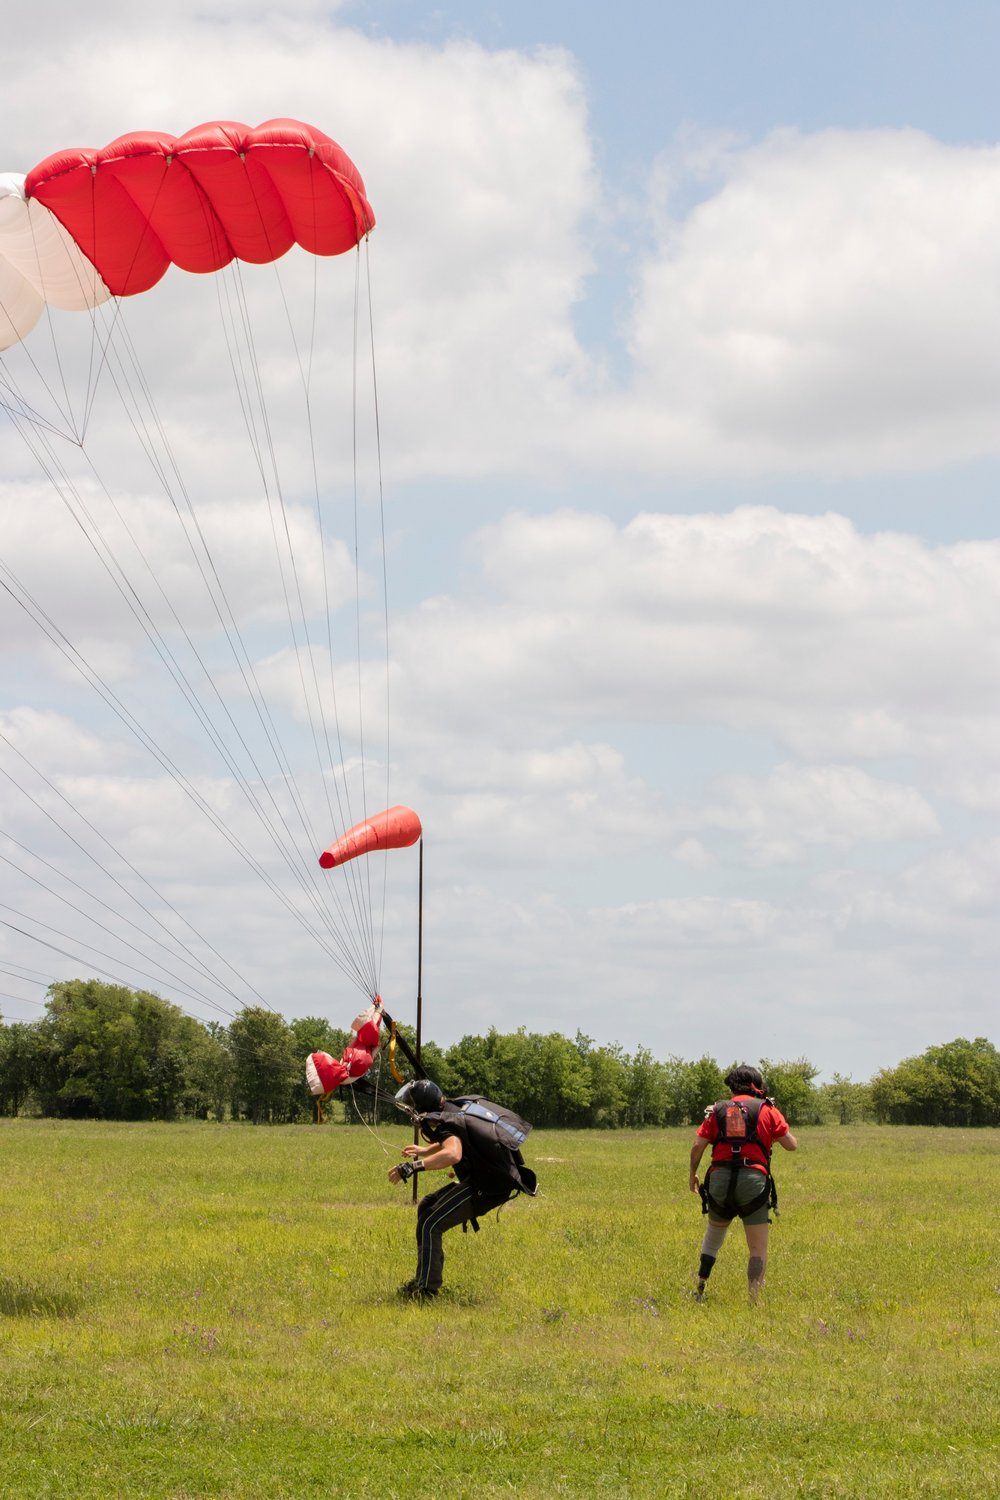 Amputee Skydiving Event